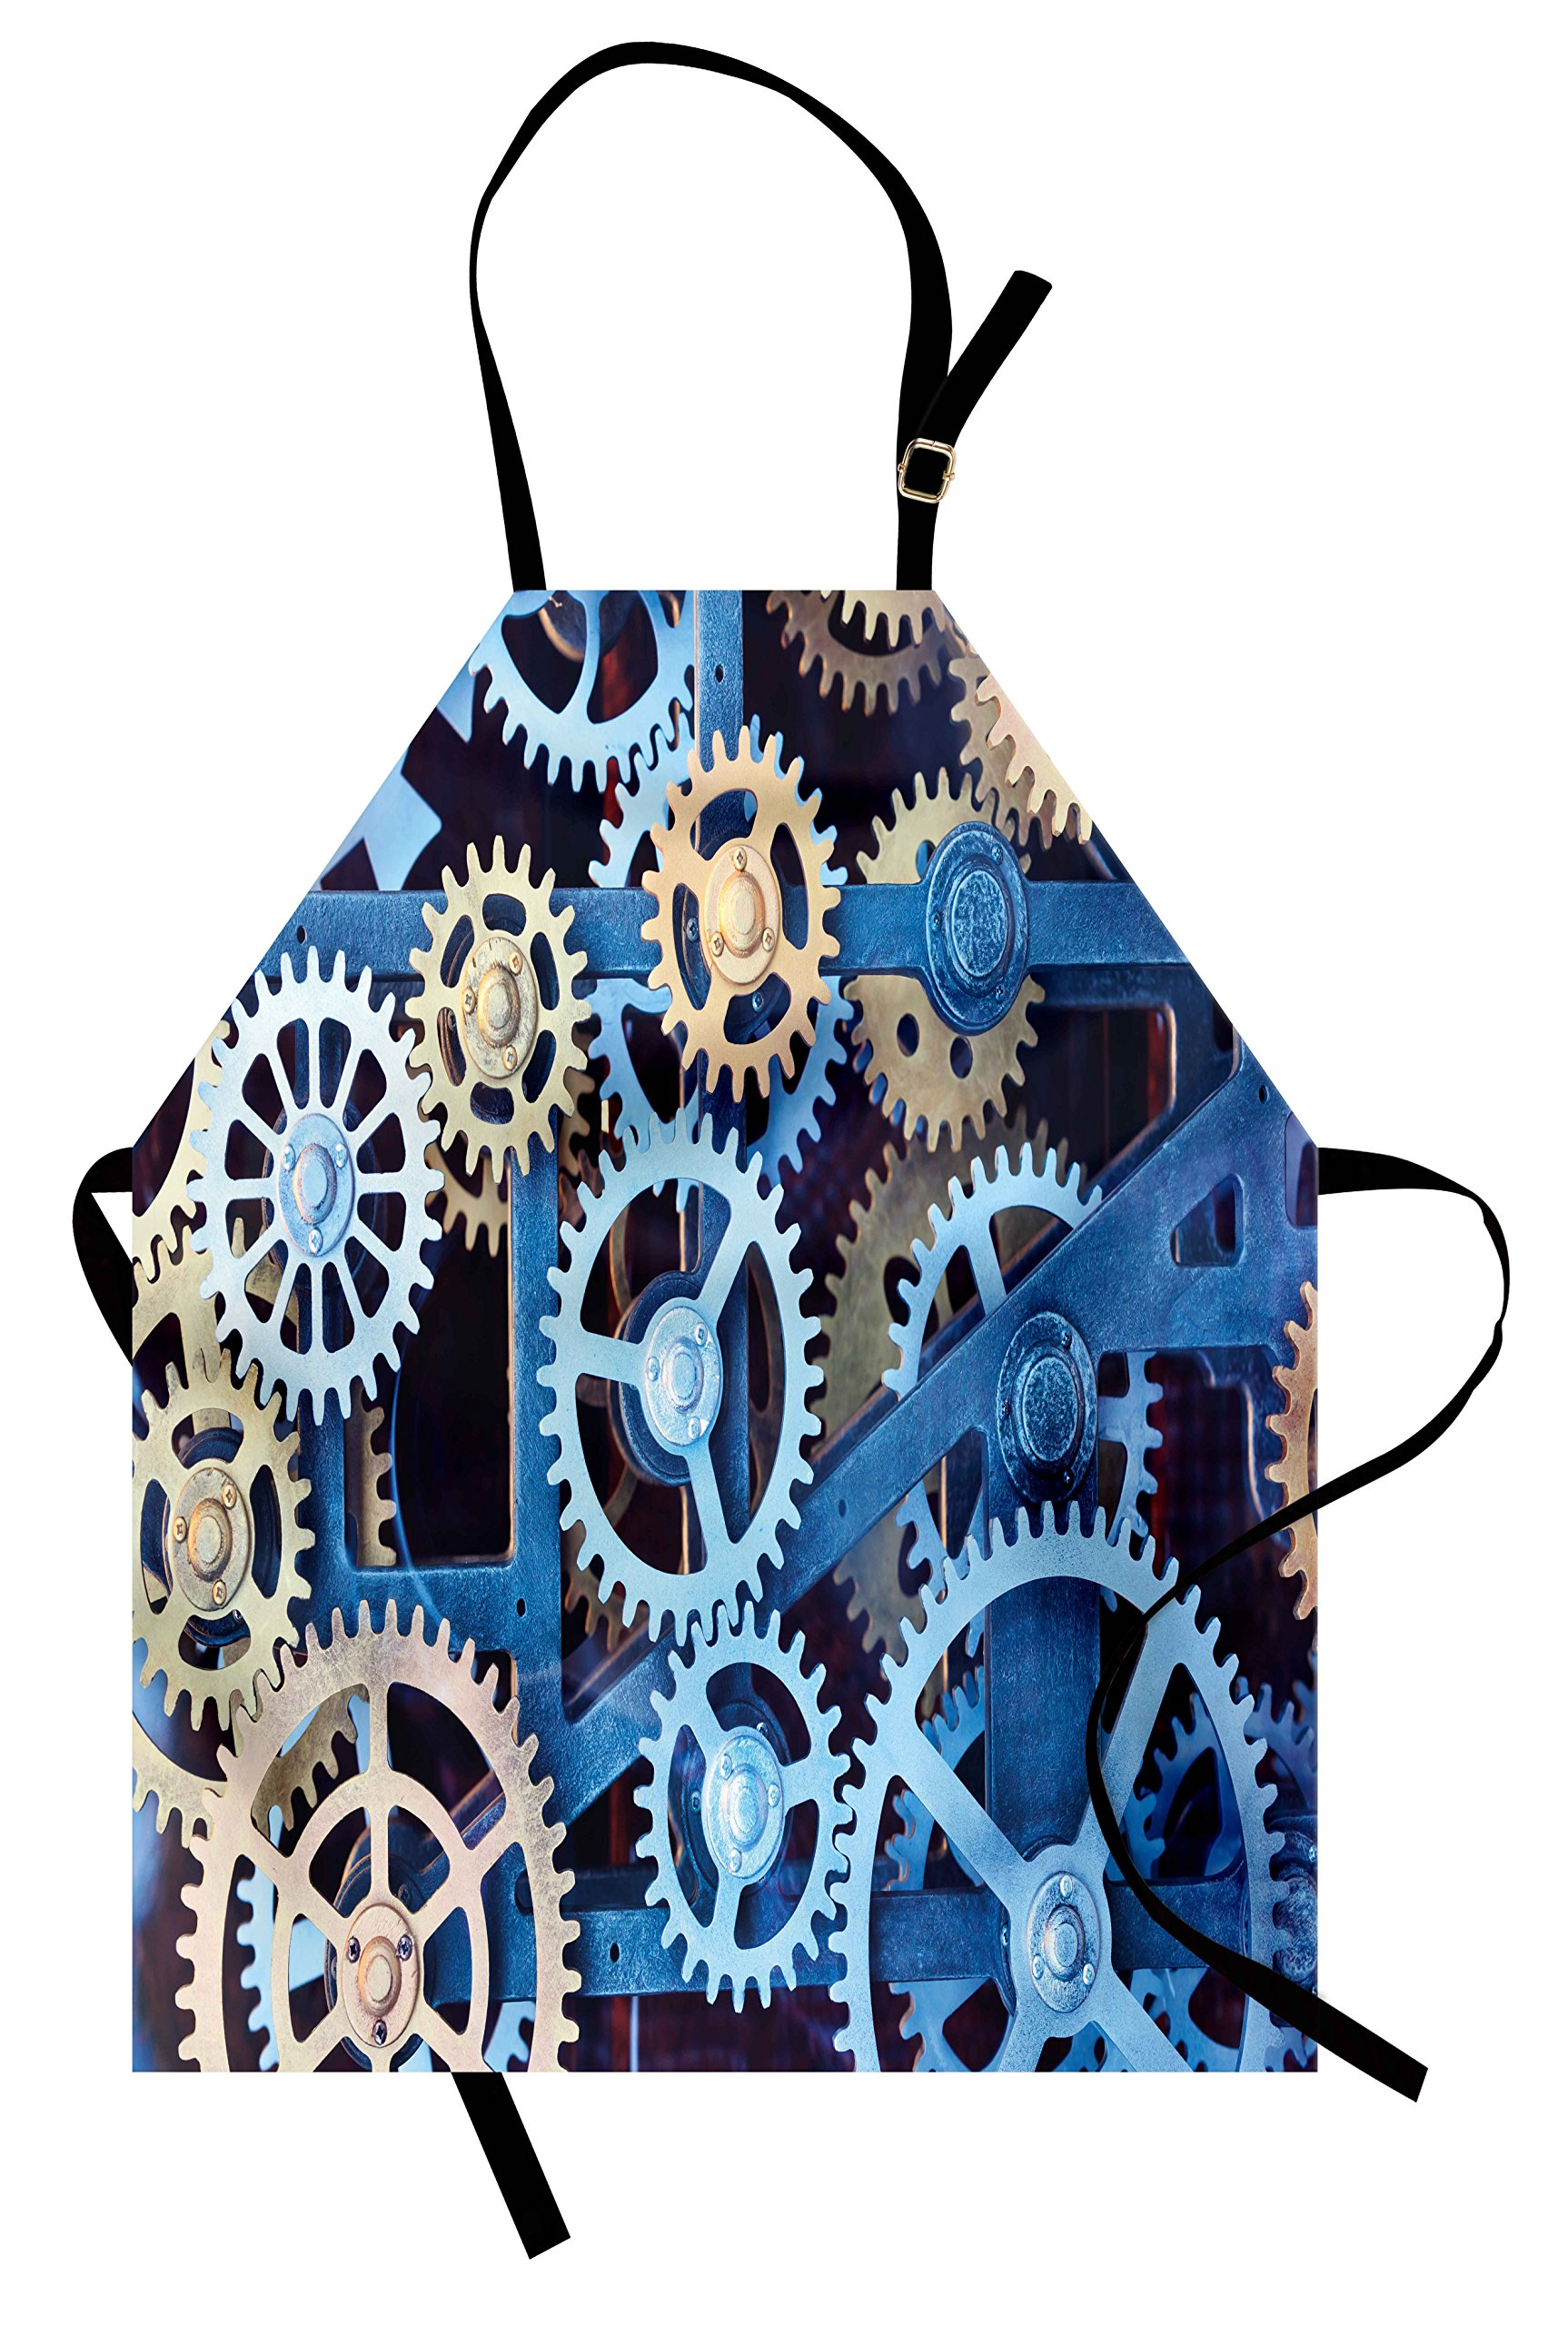 Ambesonne Clock Apron, Technology Clock Gears Steel Cogwheels Pattern Mechanical Theme Design Print, Unisex Kitchen Bib Apron with Adjustable Neck for Cooking Baking Gardening, Blue and Sand Brown